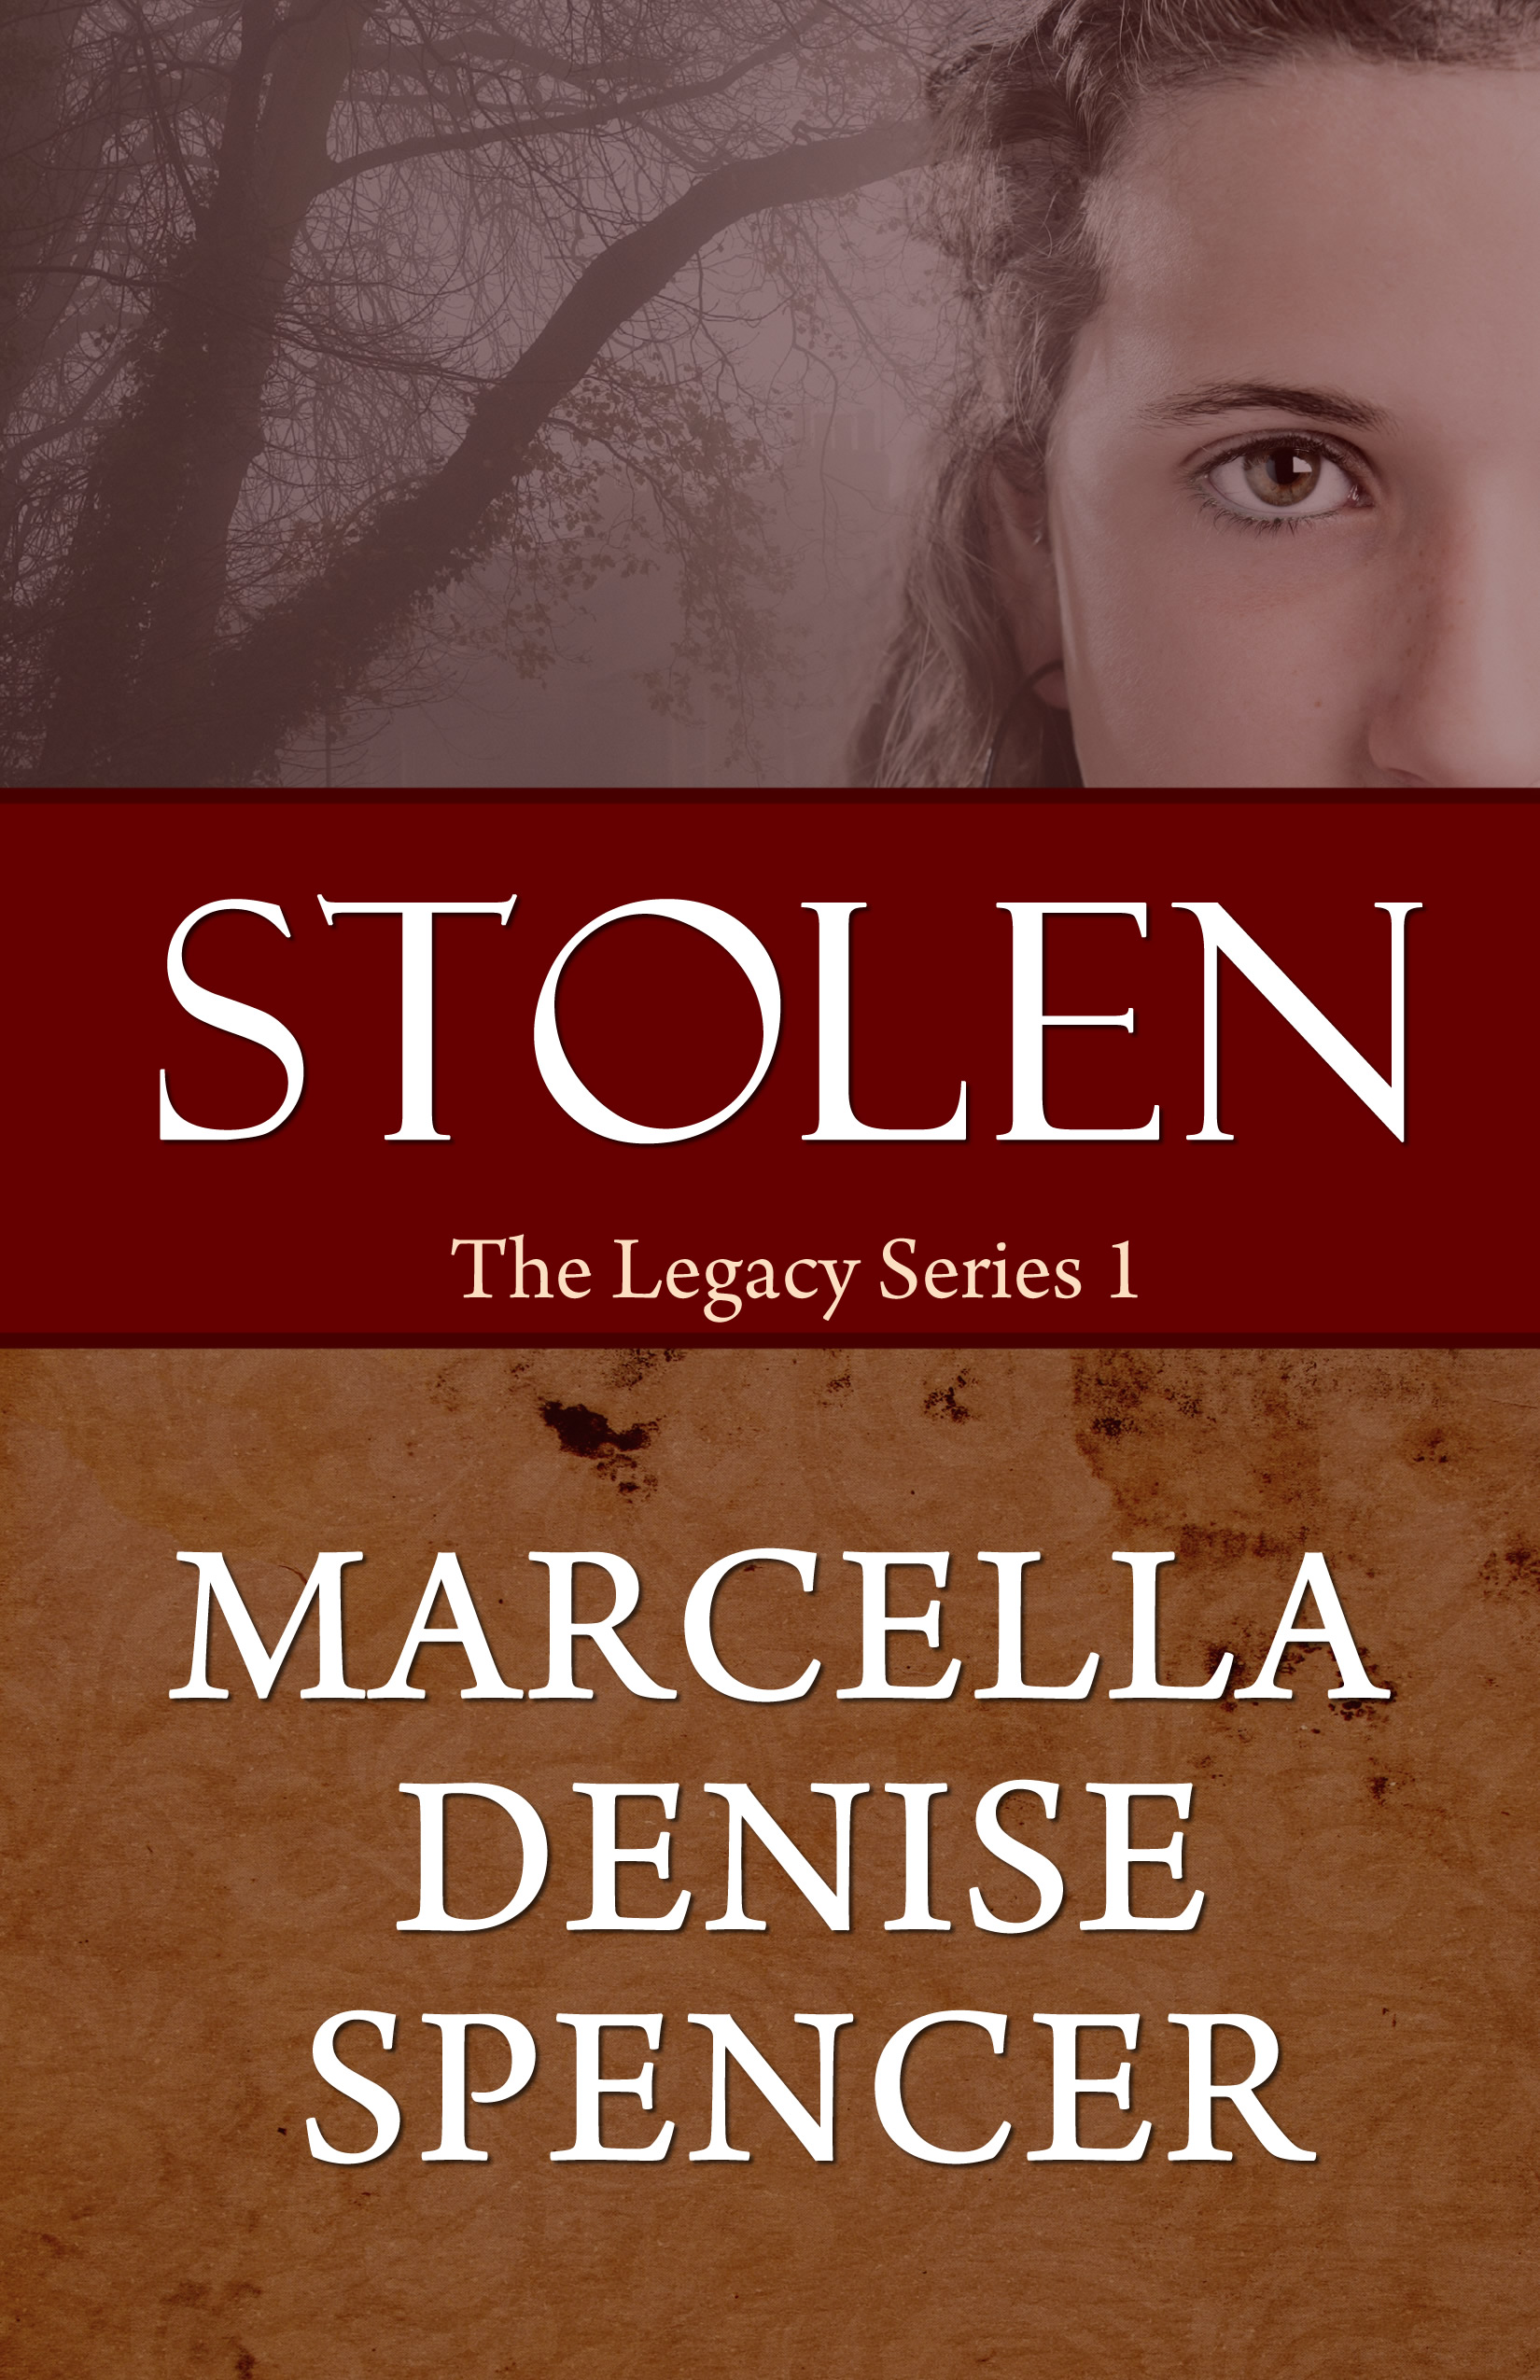 stolen legacy The film is hard to watch children, parents and grandparents tell their stories, dissolving into tears as they describe the forced separation from parents or children, and the abuse and humiliation they endured.